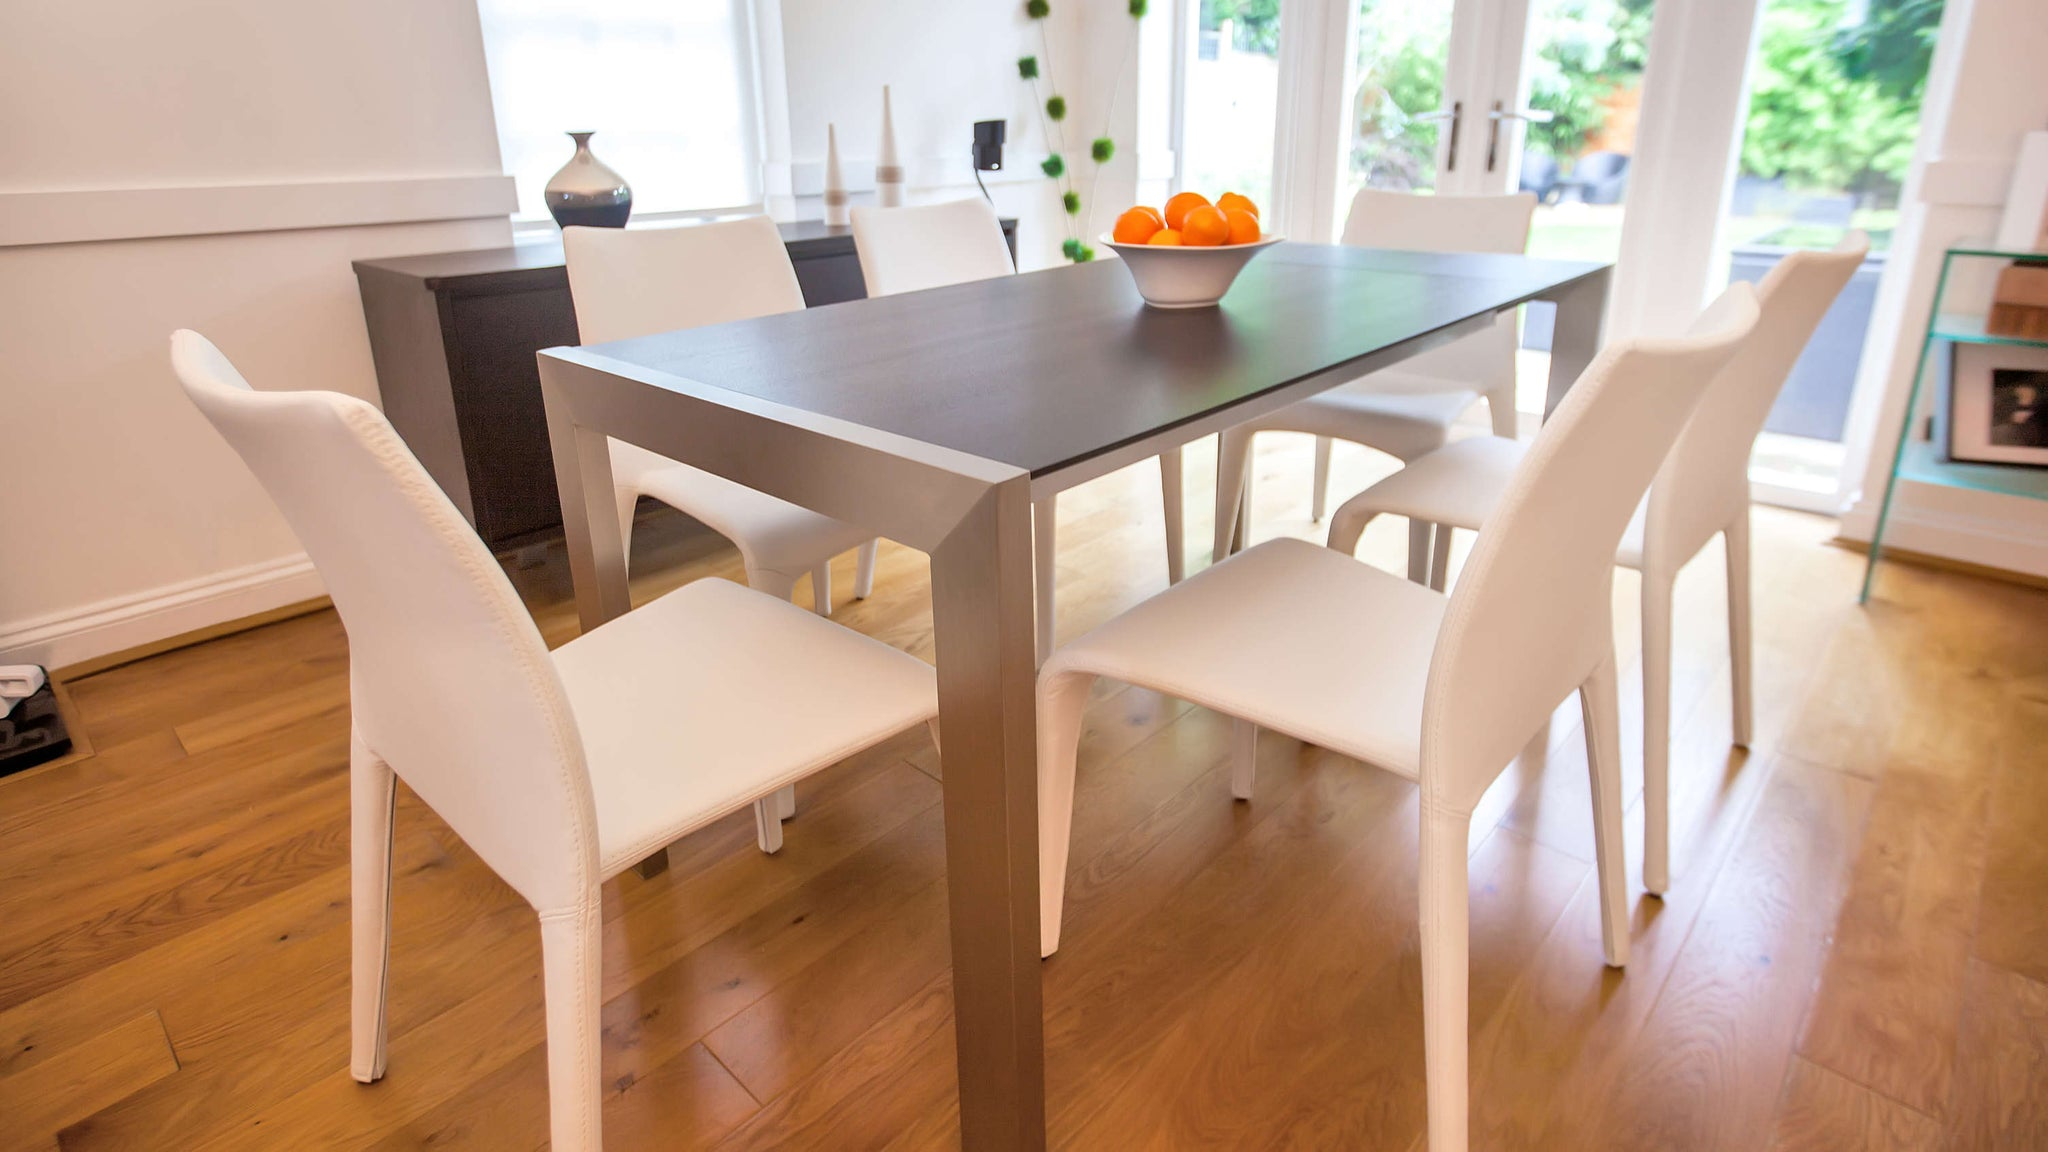 4-8 Seating Dining Table and White Faux Leather Dining Chairs